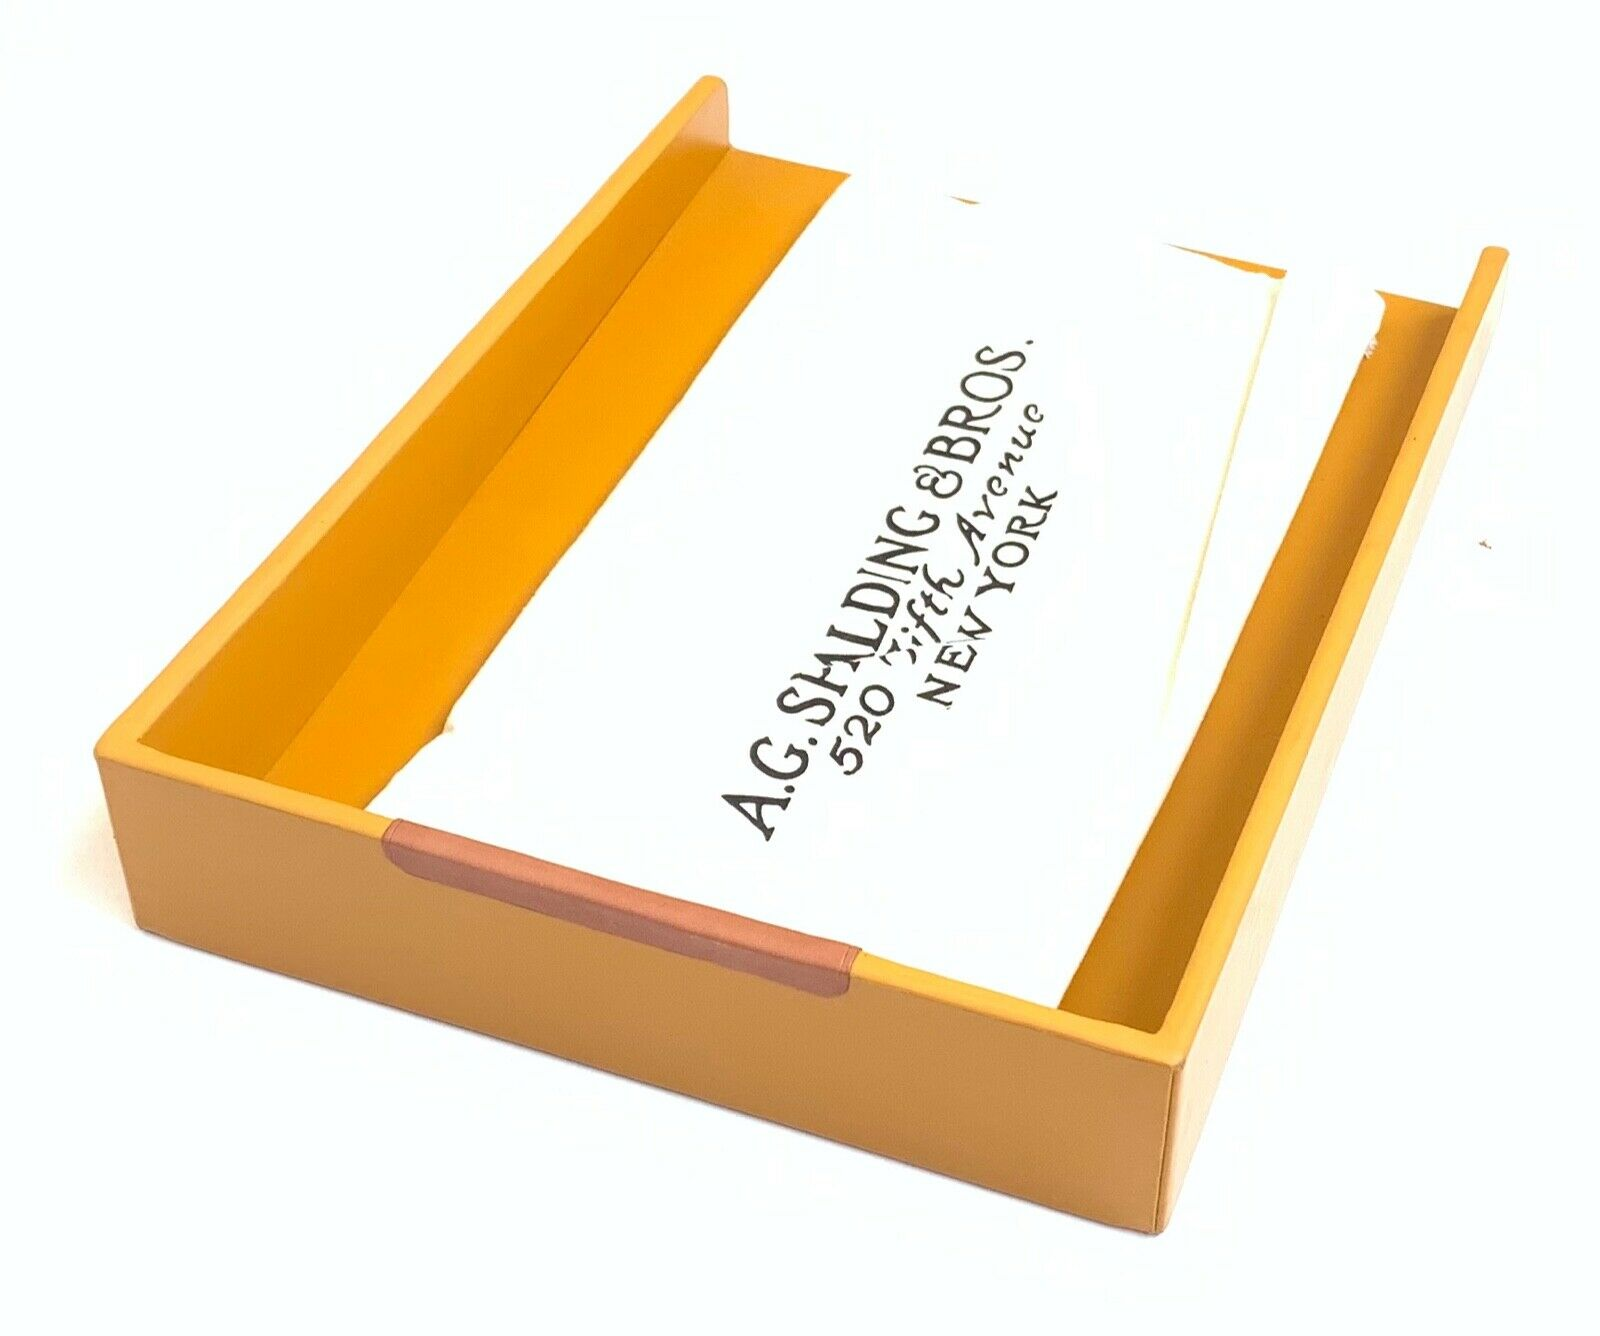 a.G Spalding & Bros Calf Vegetable Tanned Leather Document Tray, Mustard